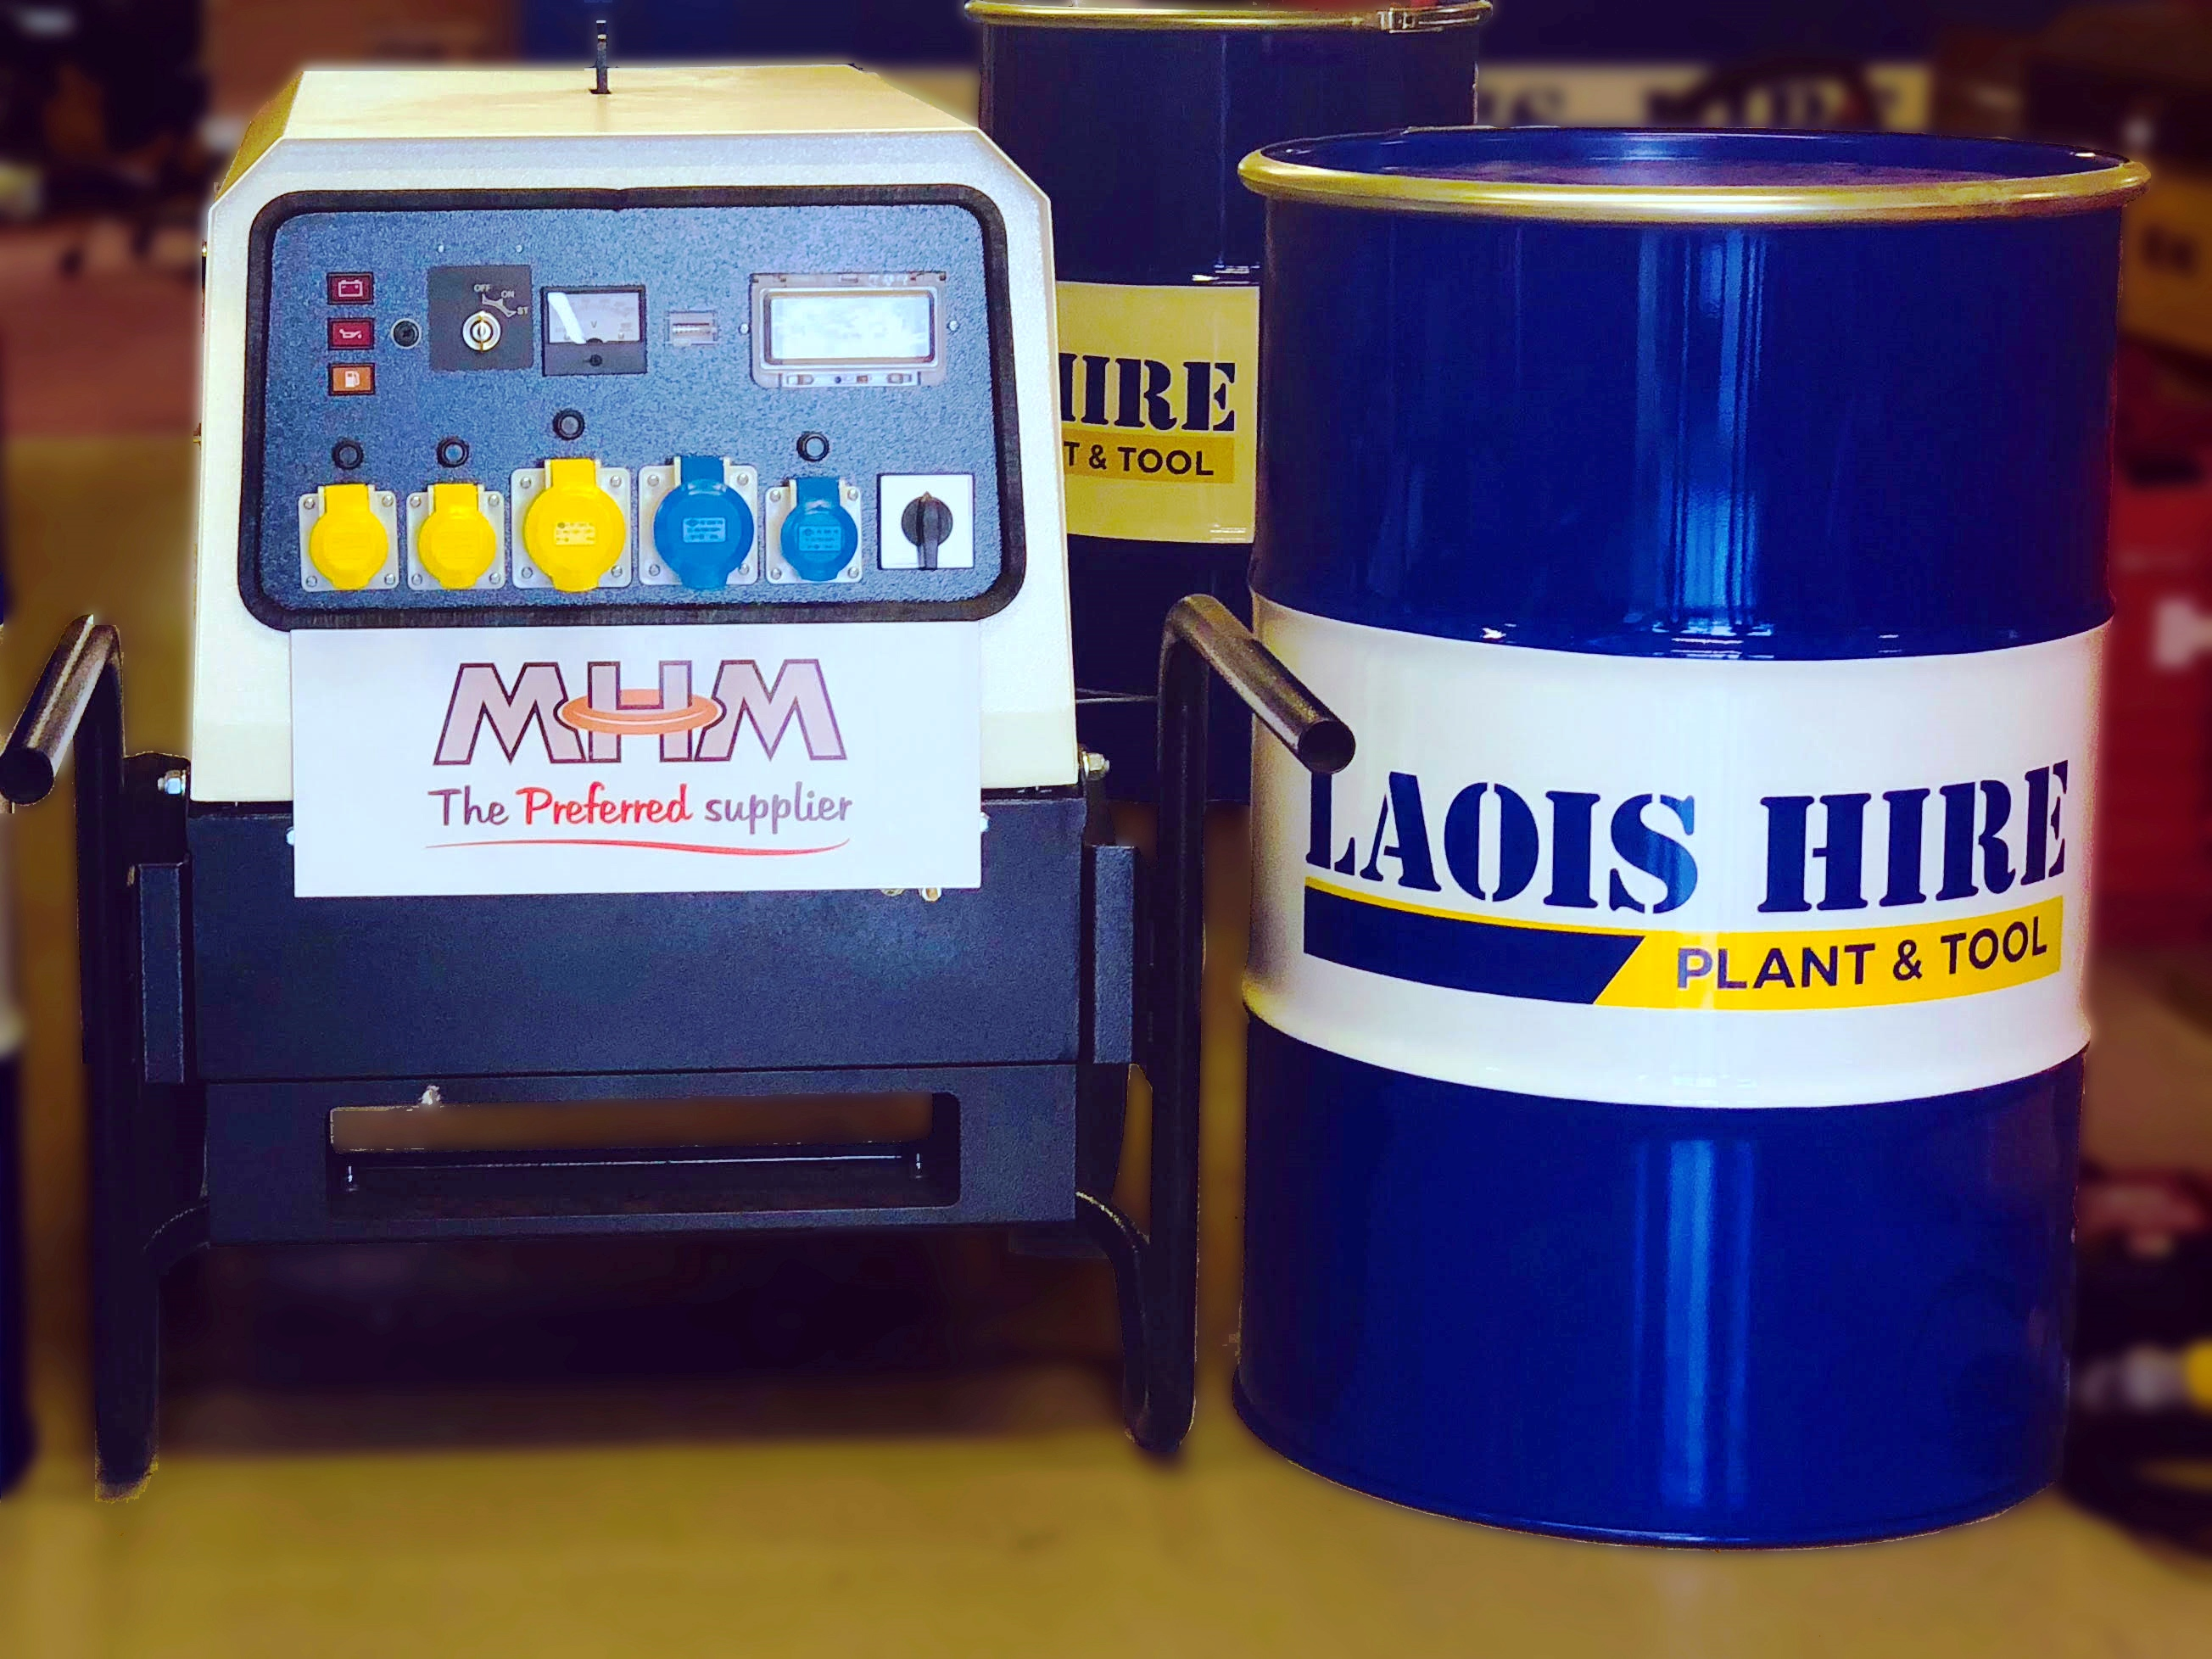 PRESS RELEASE: Laois Hire and MHM Plant Combie in Ireland